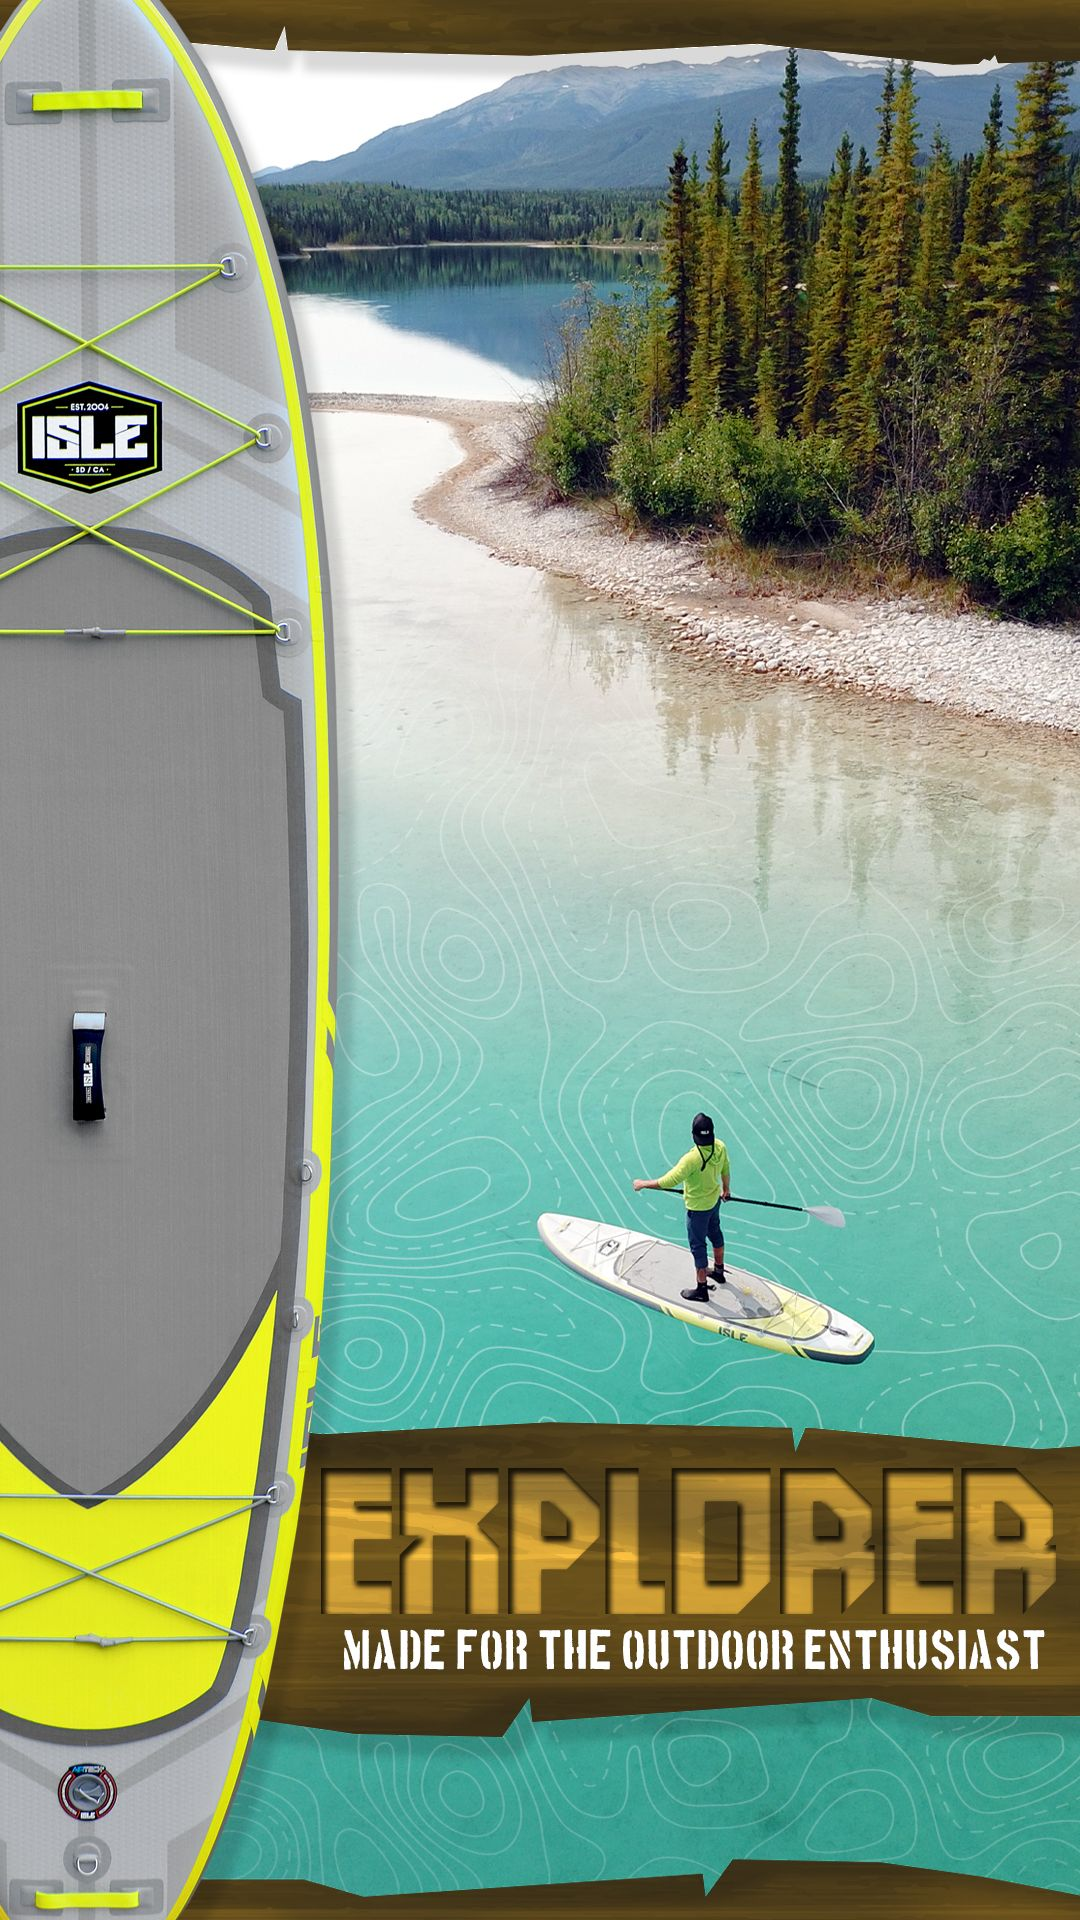 aad5ca926cd5 Explore secluded lakes and trek into any hard to reach destination with our  ultimate expedition explorer paddle board.